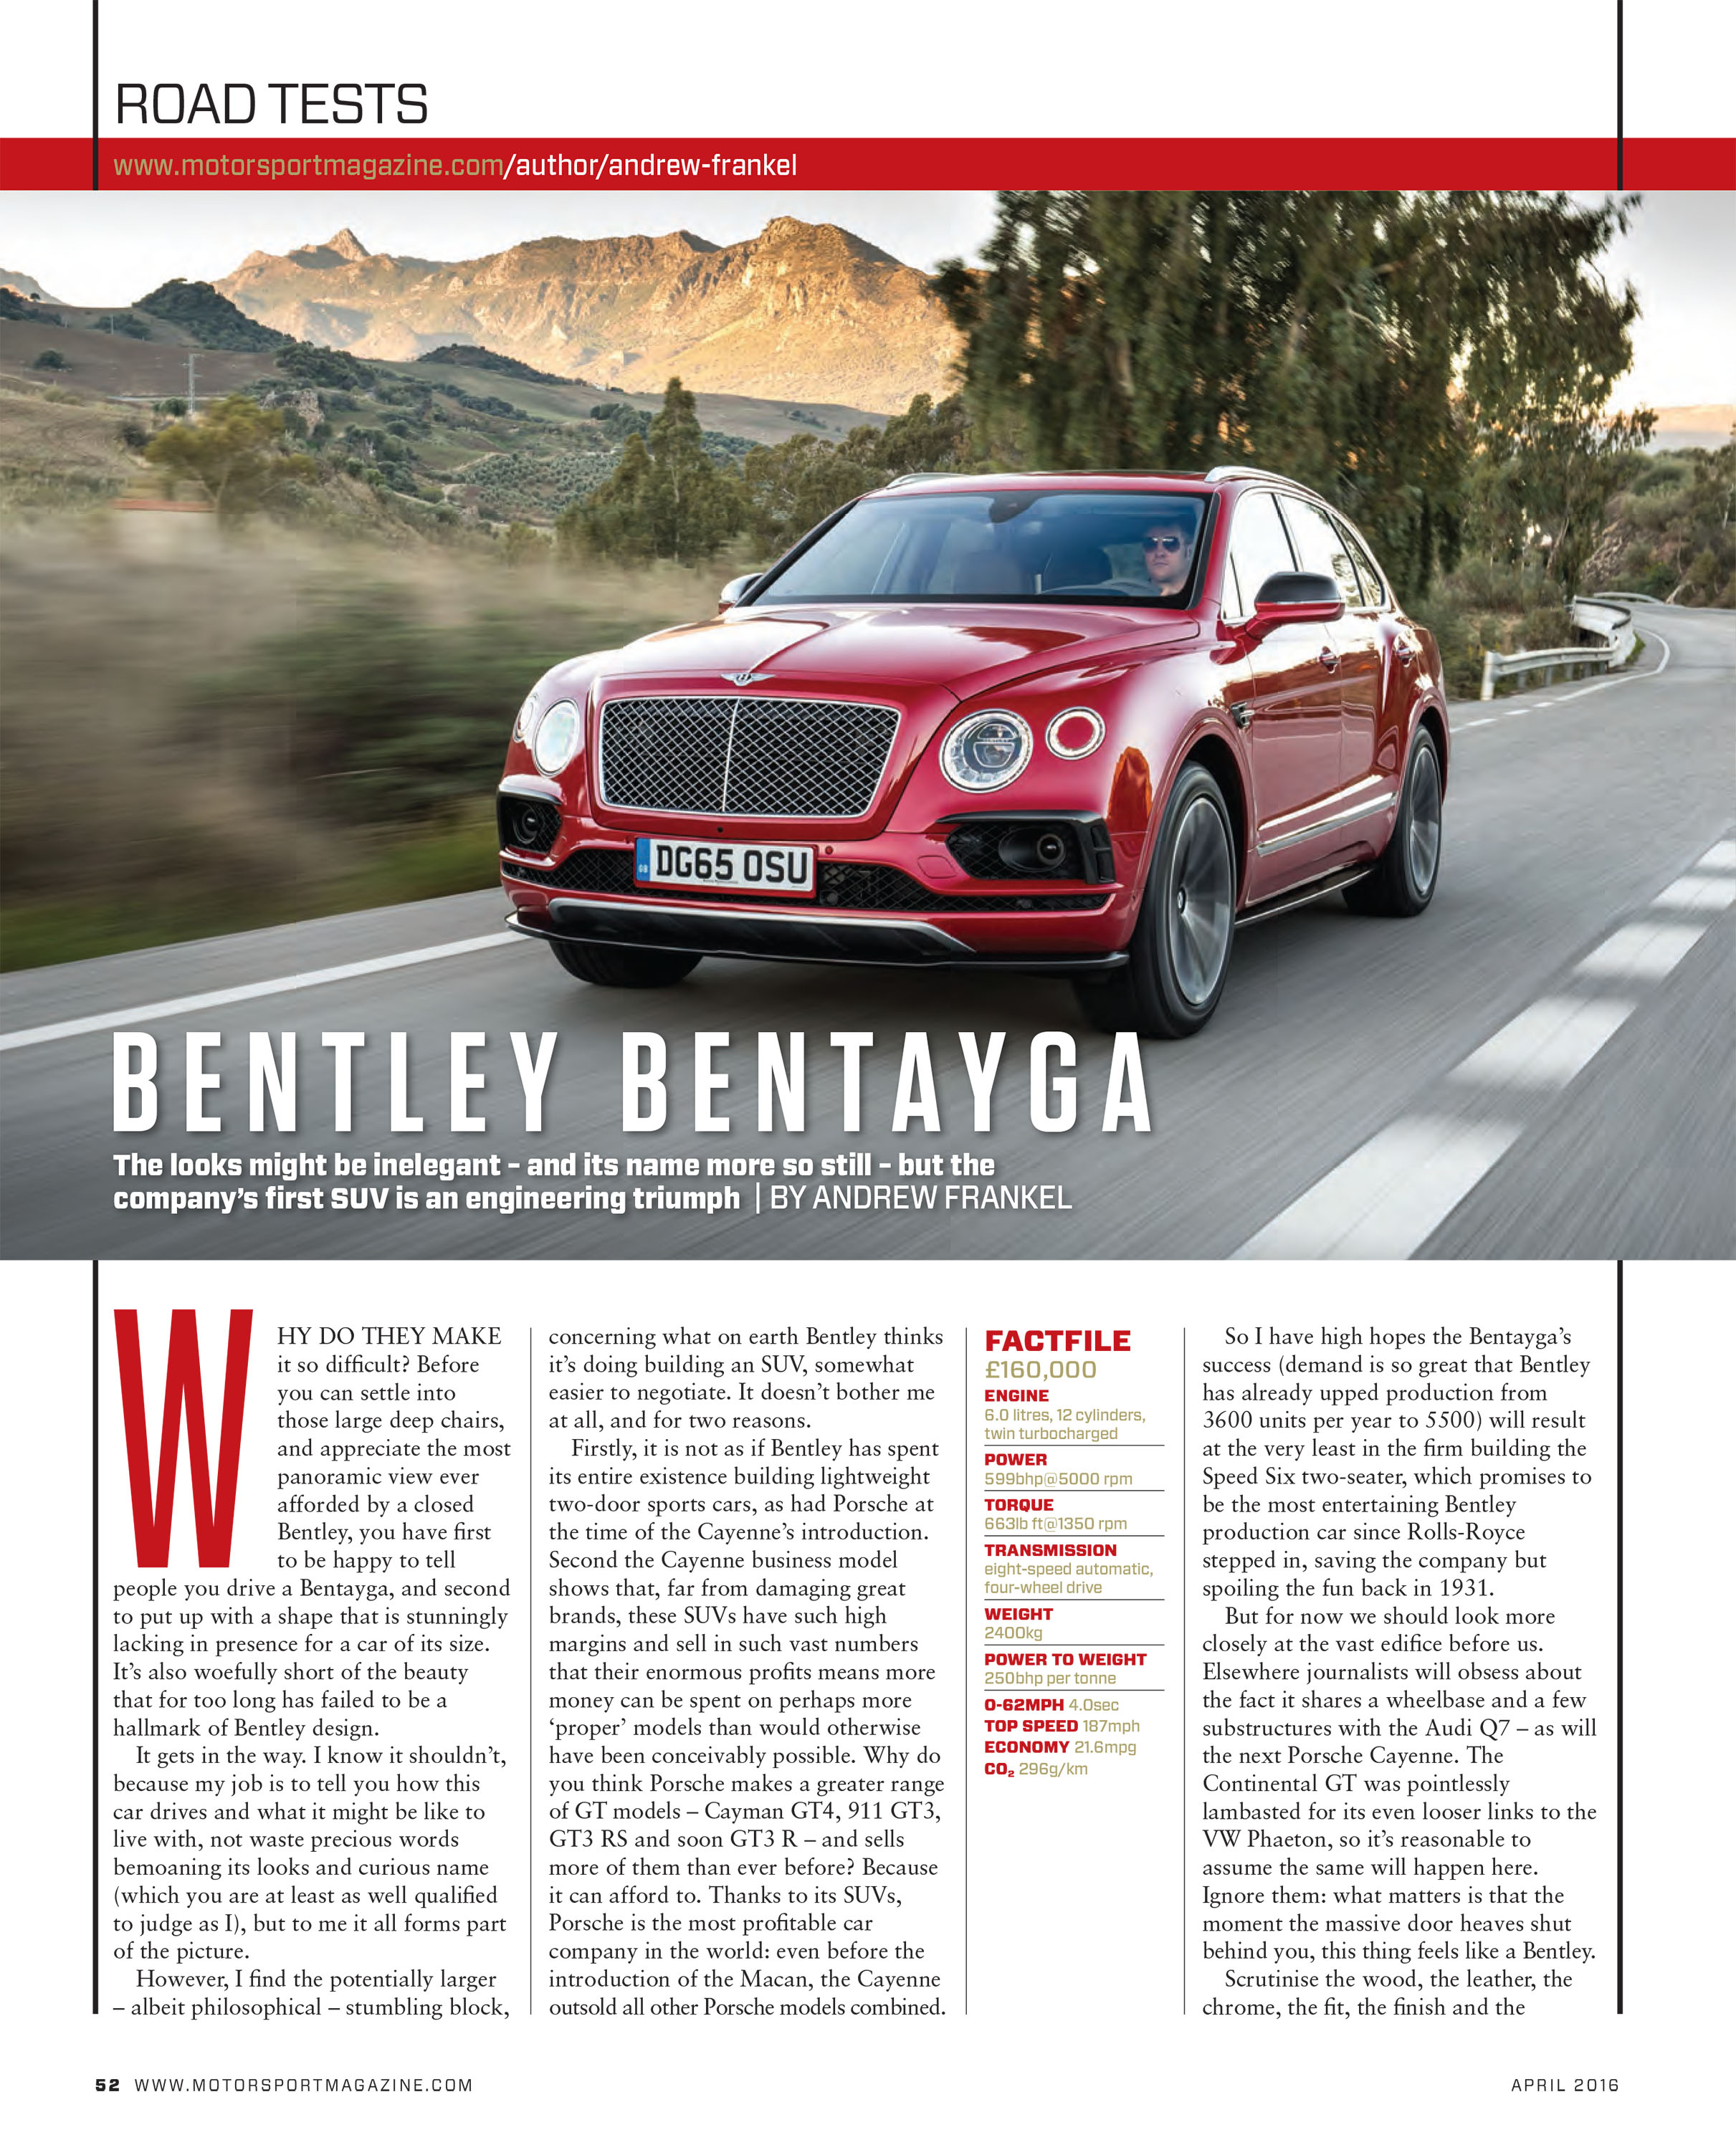 Bentley Bentayga Speed Beats Lamborghini Urus: Bentley Will Aim To Break The SUV Record With Its Maiden